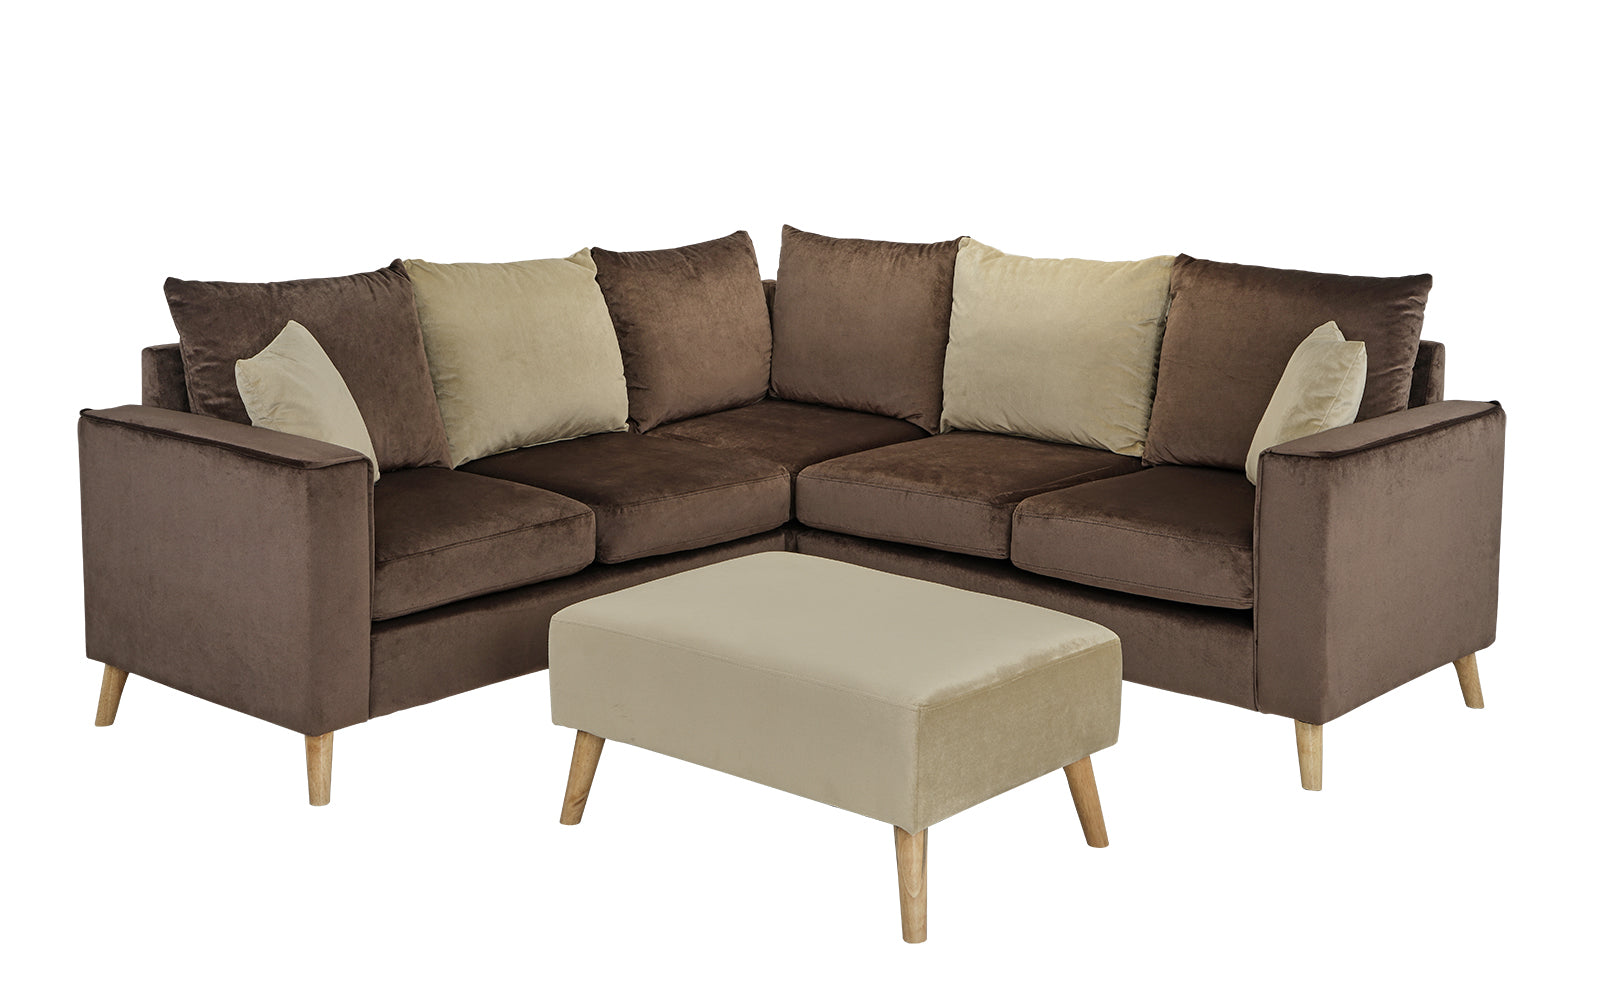 Alanna Small Modern Velvet Sectional Sofa With Ottoman